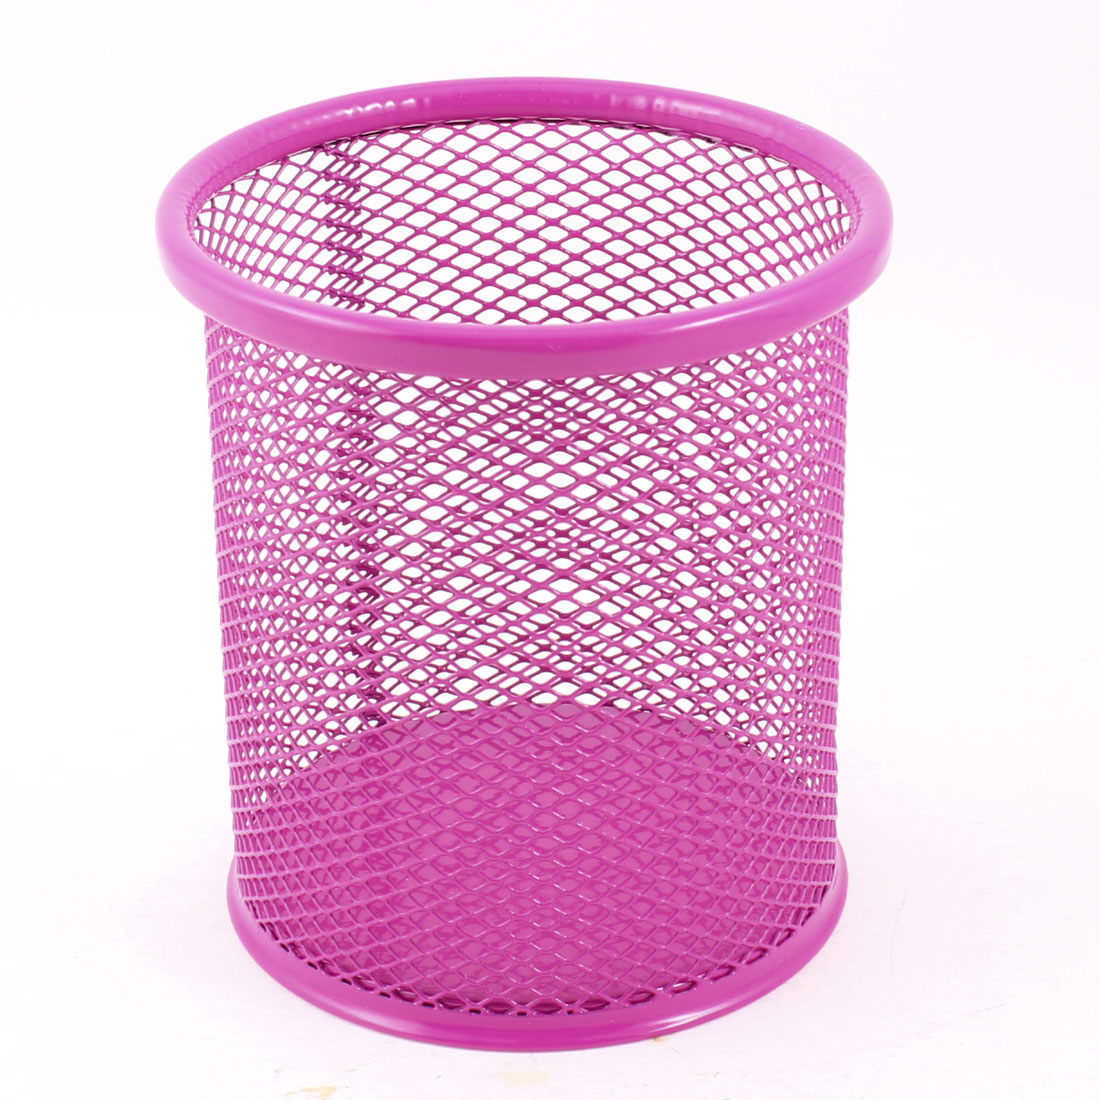 "Stationery 3.3"" Dia Cylinder Shape Pen Holder Container Desktop Decor Fuchsia"